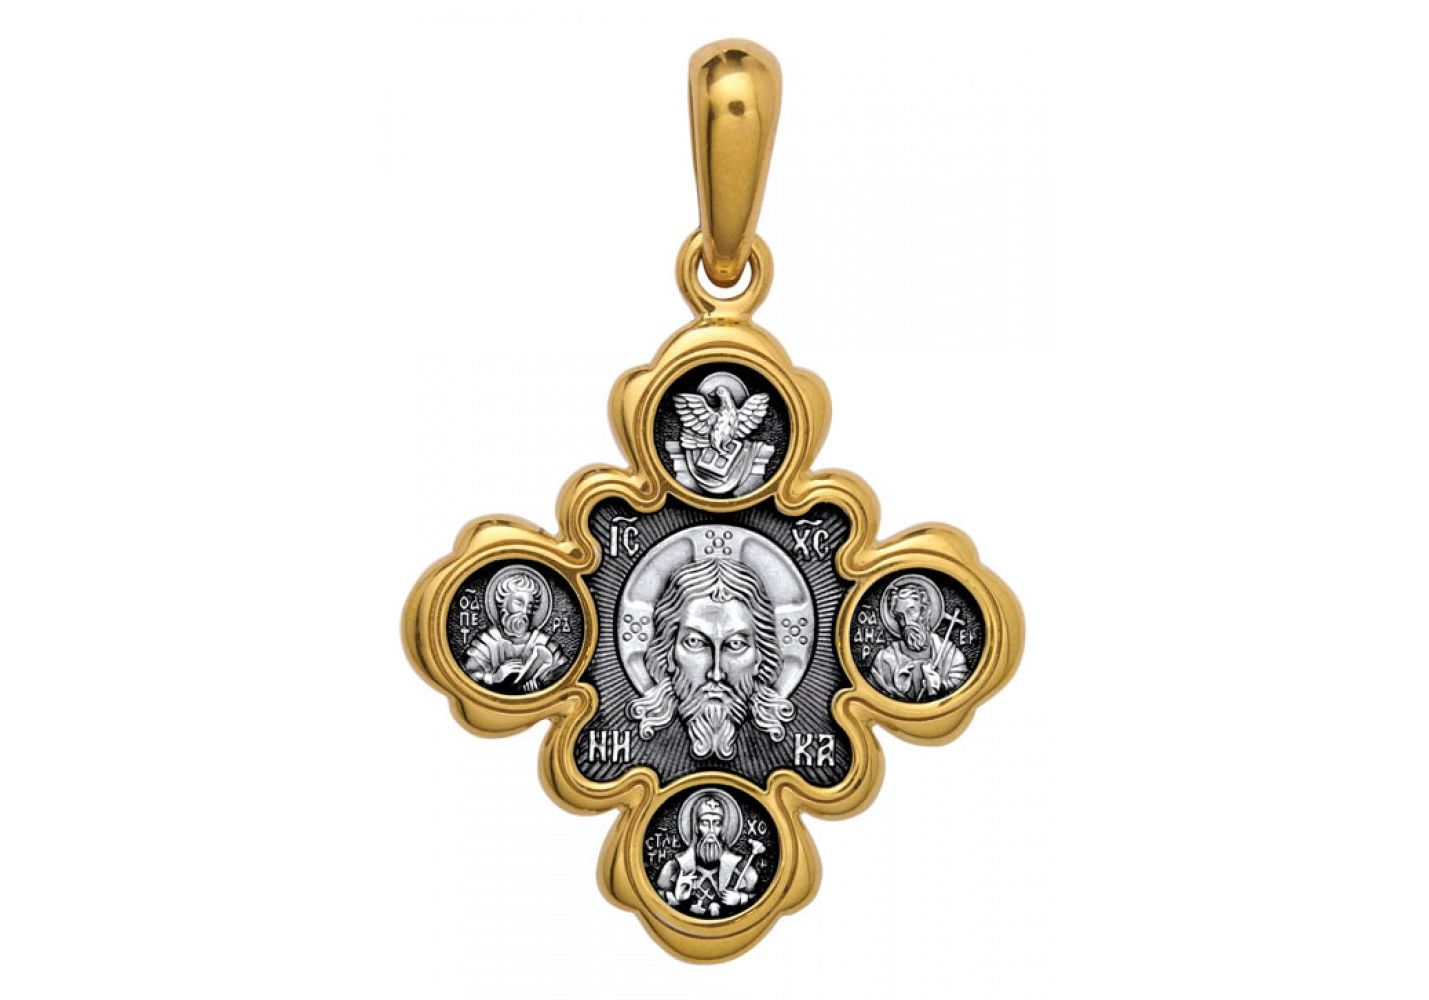 Neck Cross Akimov 101.001 «The Vernicle Image of the Saviour. The Kazan icon of the Mother of God»